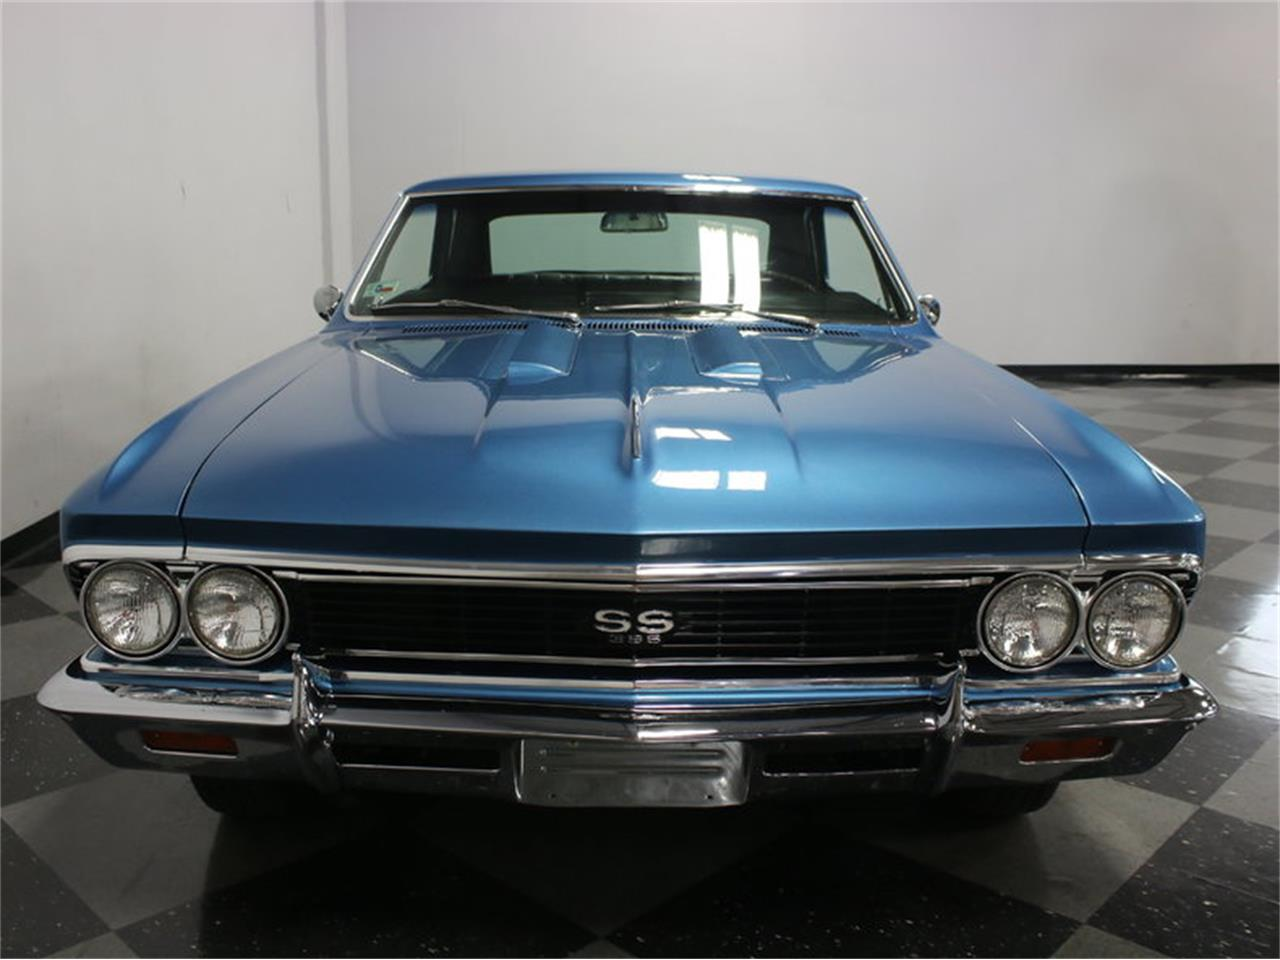 1966 Chevrolet Chevelle Ss 396 L78 For Sale Cc Chevy Large Picture Of 66 Jfoc